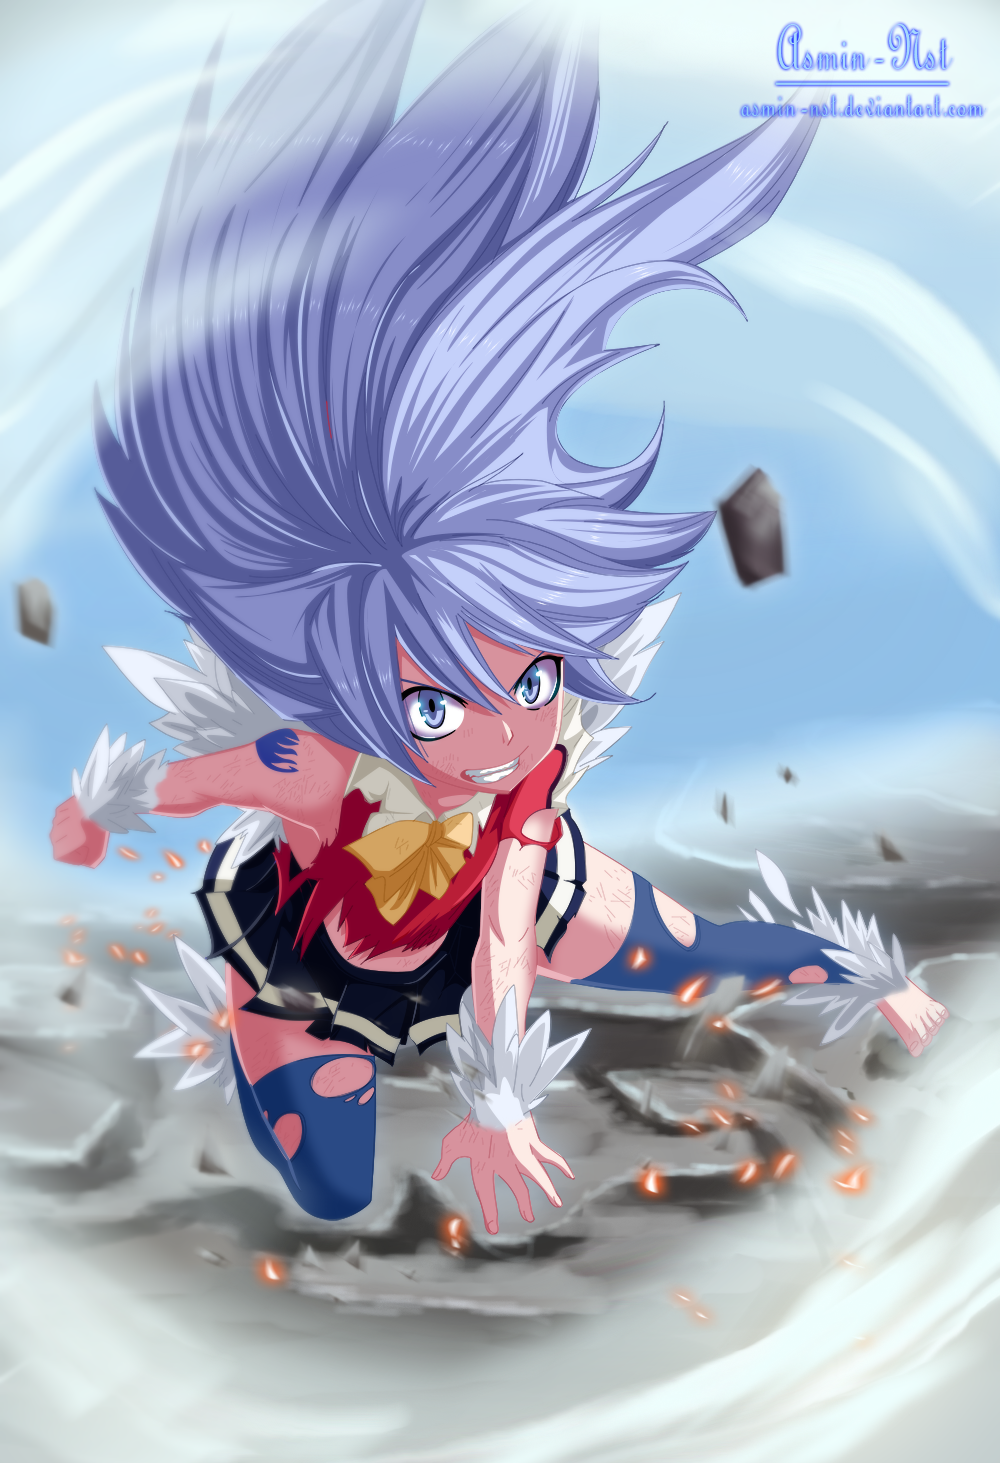 Wendy Dragon force - Fairy Tail 376 by Asmin-Nst | Fairy Tail ...